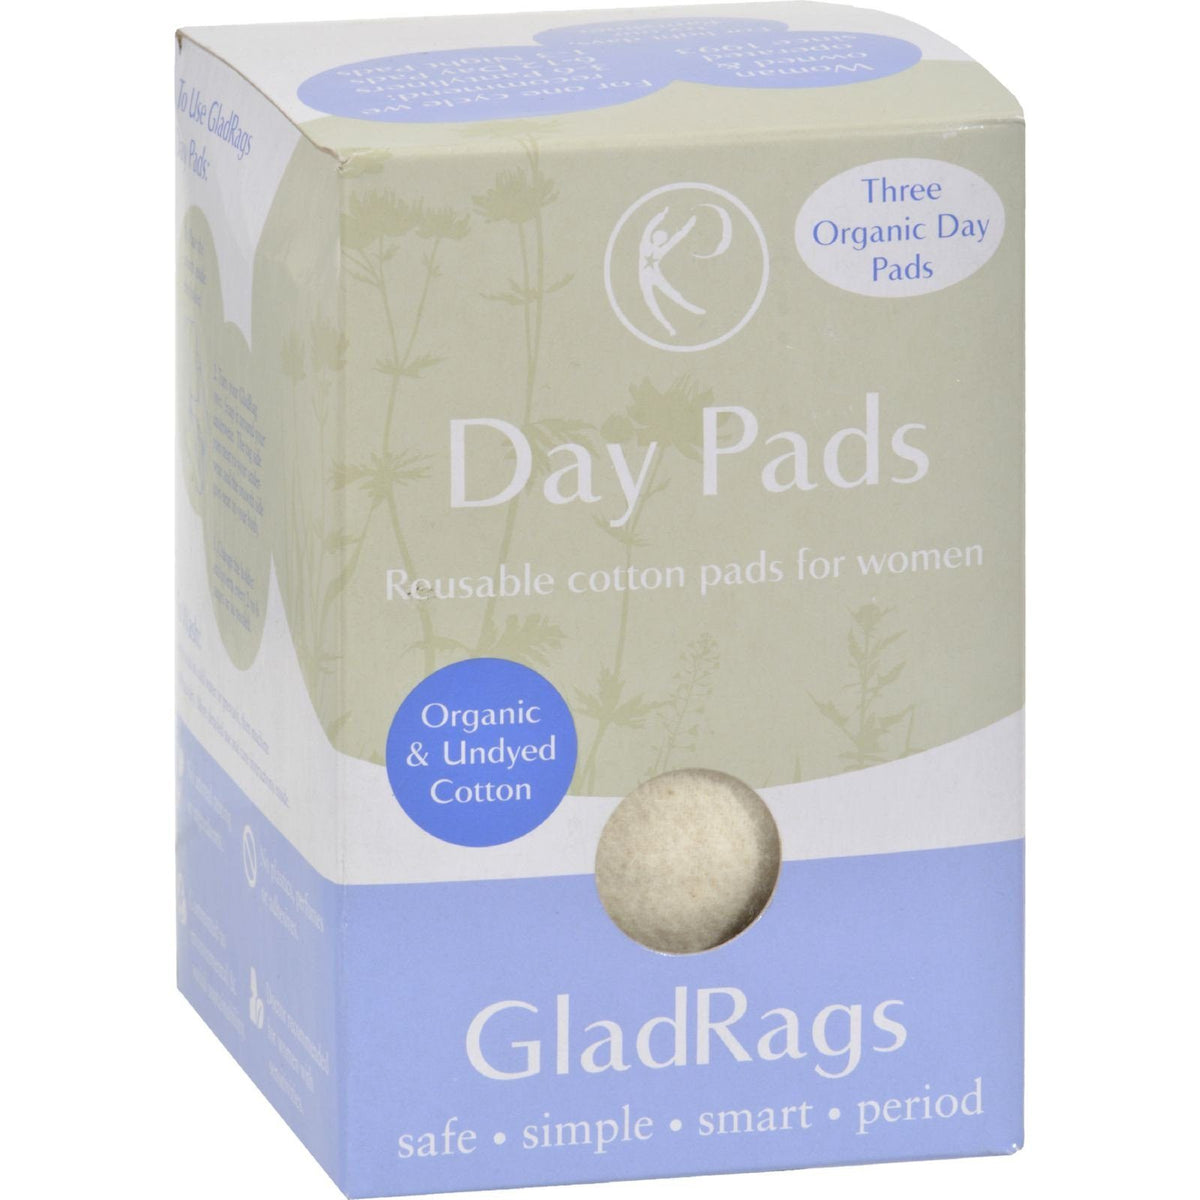 GladRags Organic Cotton Day Pad 3-Pack